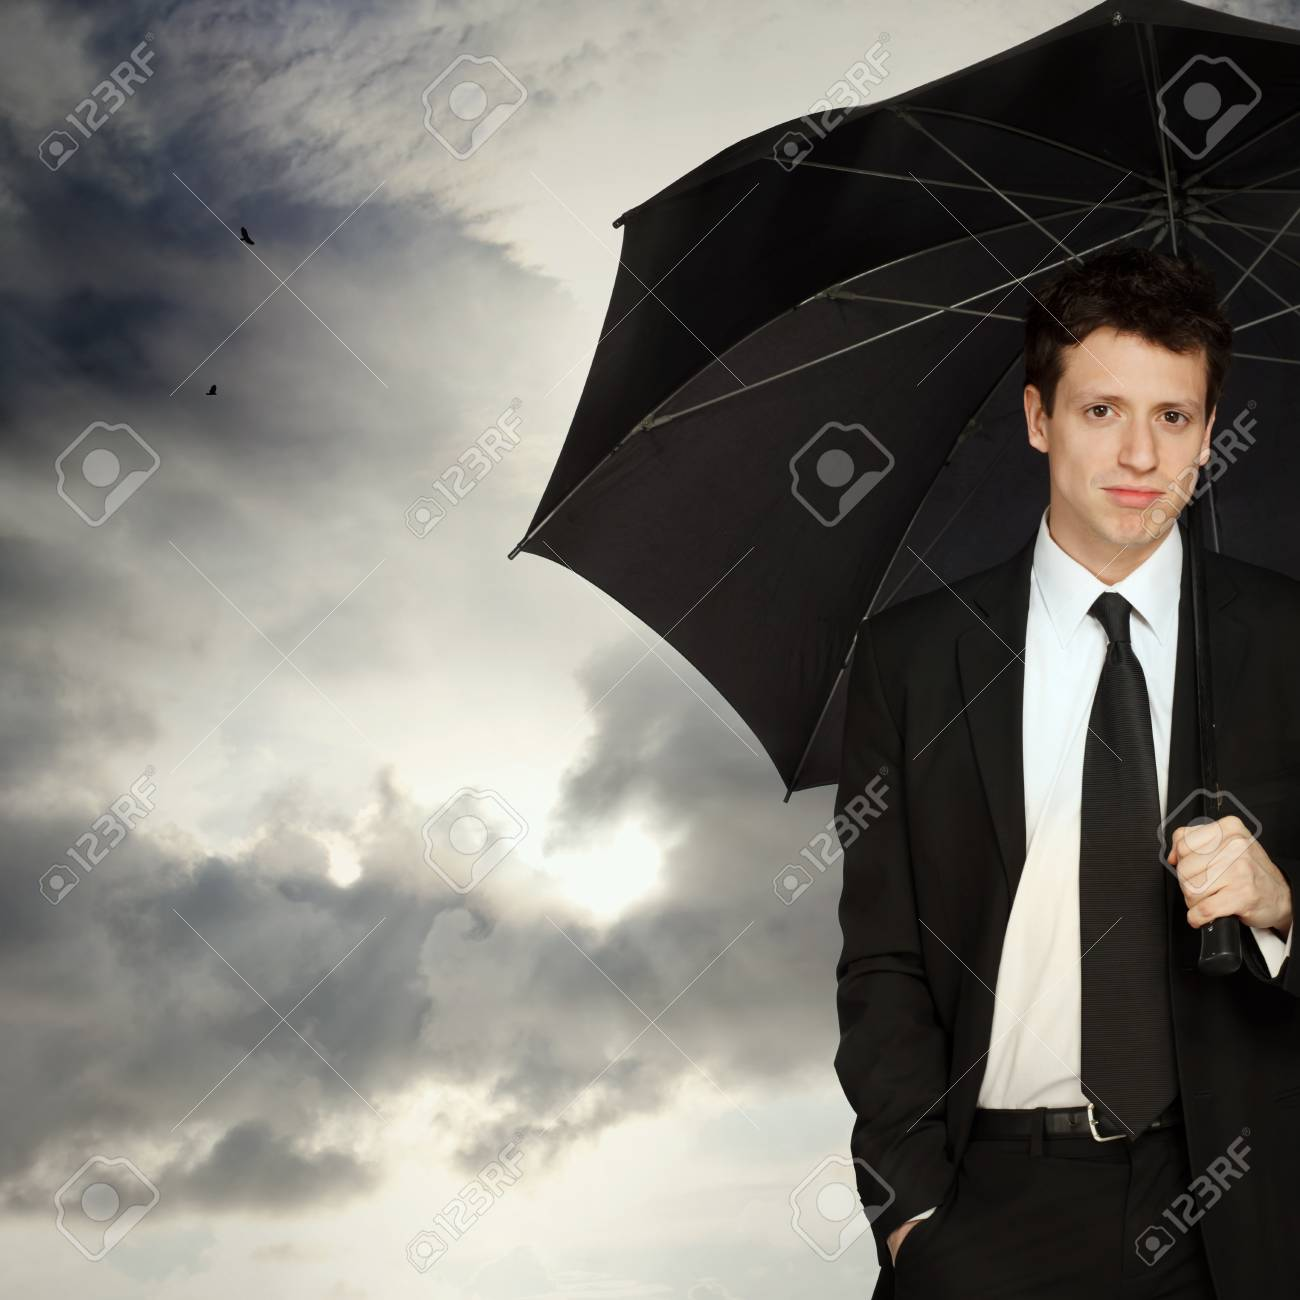 Portrait of a Young Stylish Business Man with Umbrella Stock Photo - 13123831